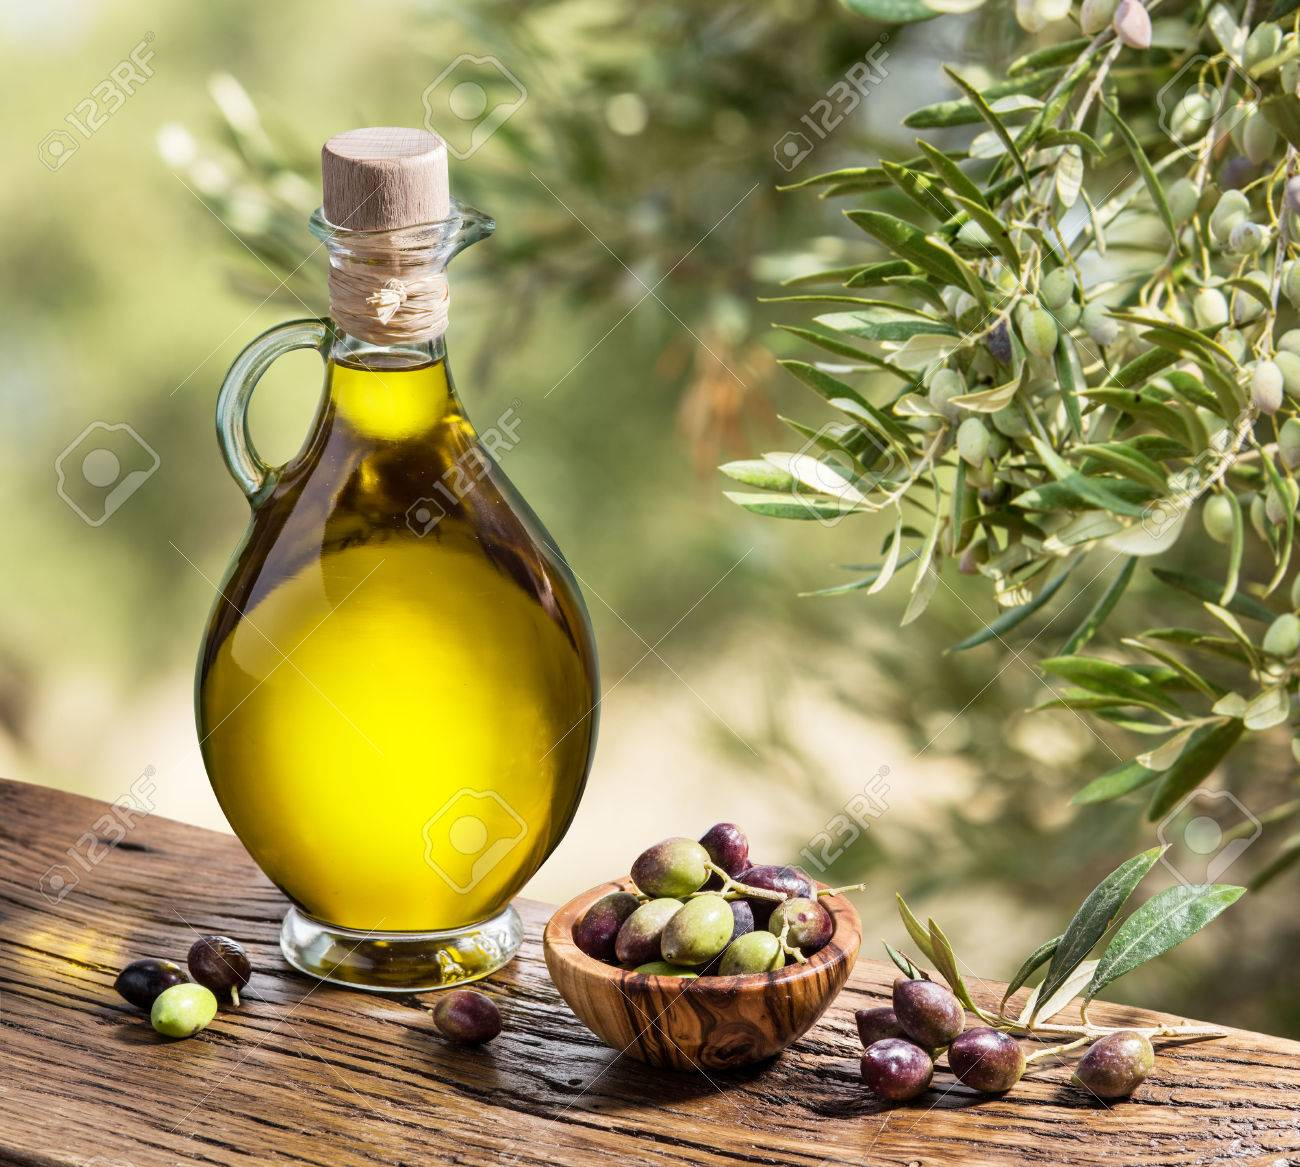 Olive oil and berries are on the wooden table under the olive tree. Standard-Bild - 49092498